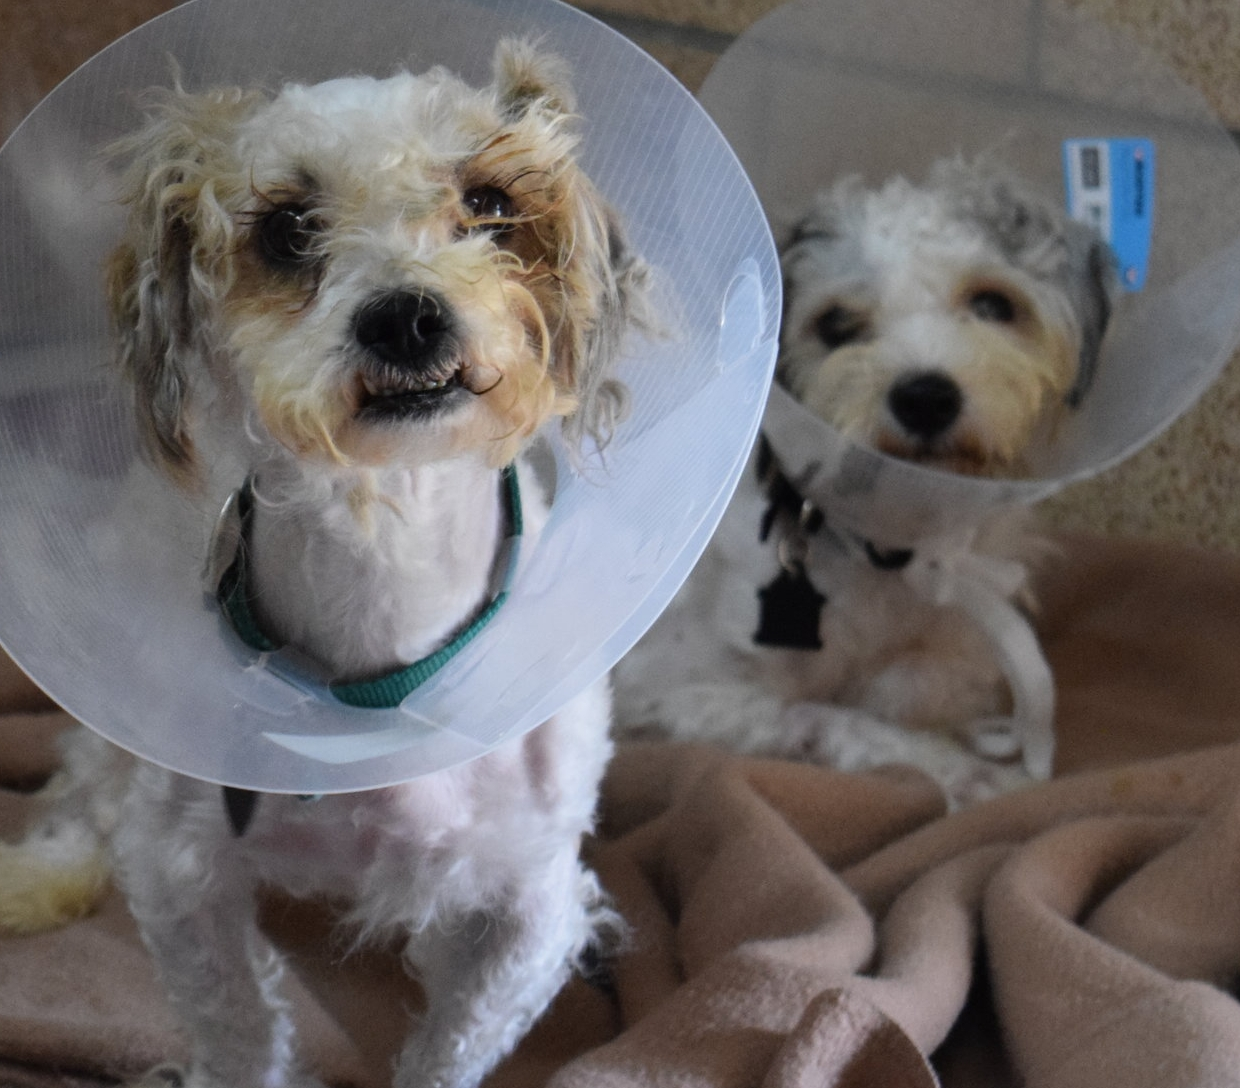 The boys are visibly happy to be able to sit up and romp around, even with their post-neutering cones!